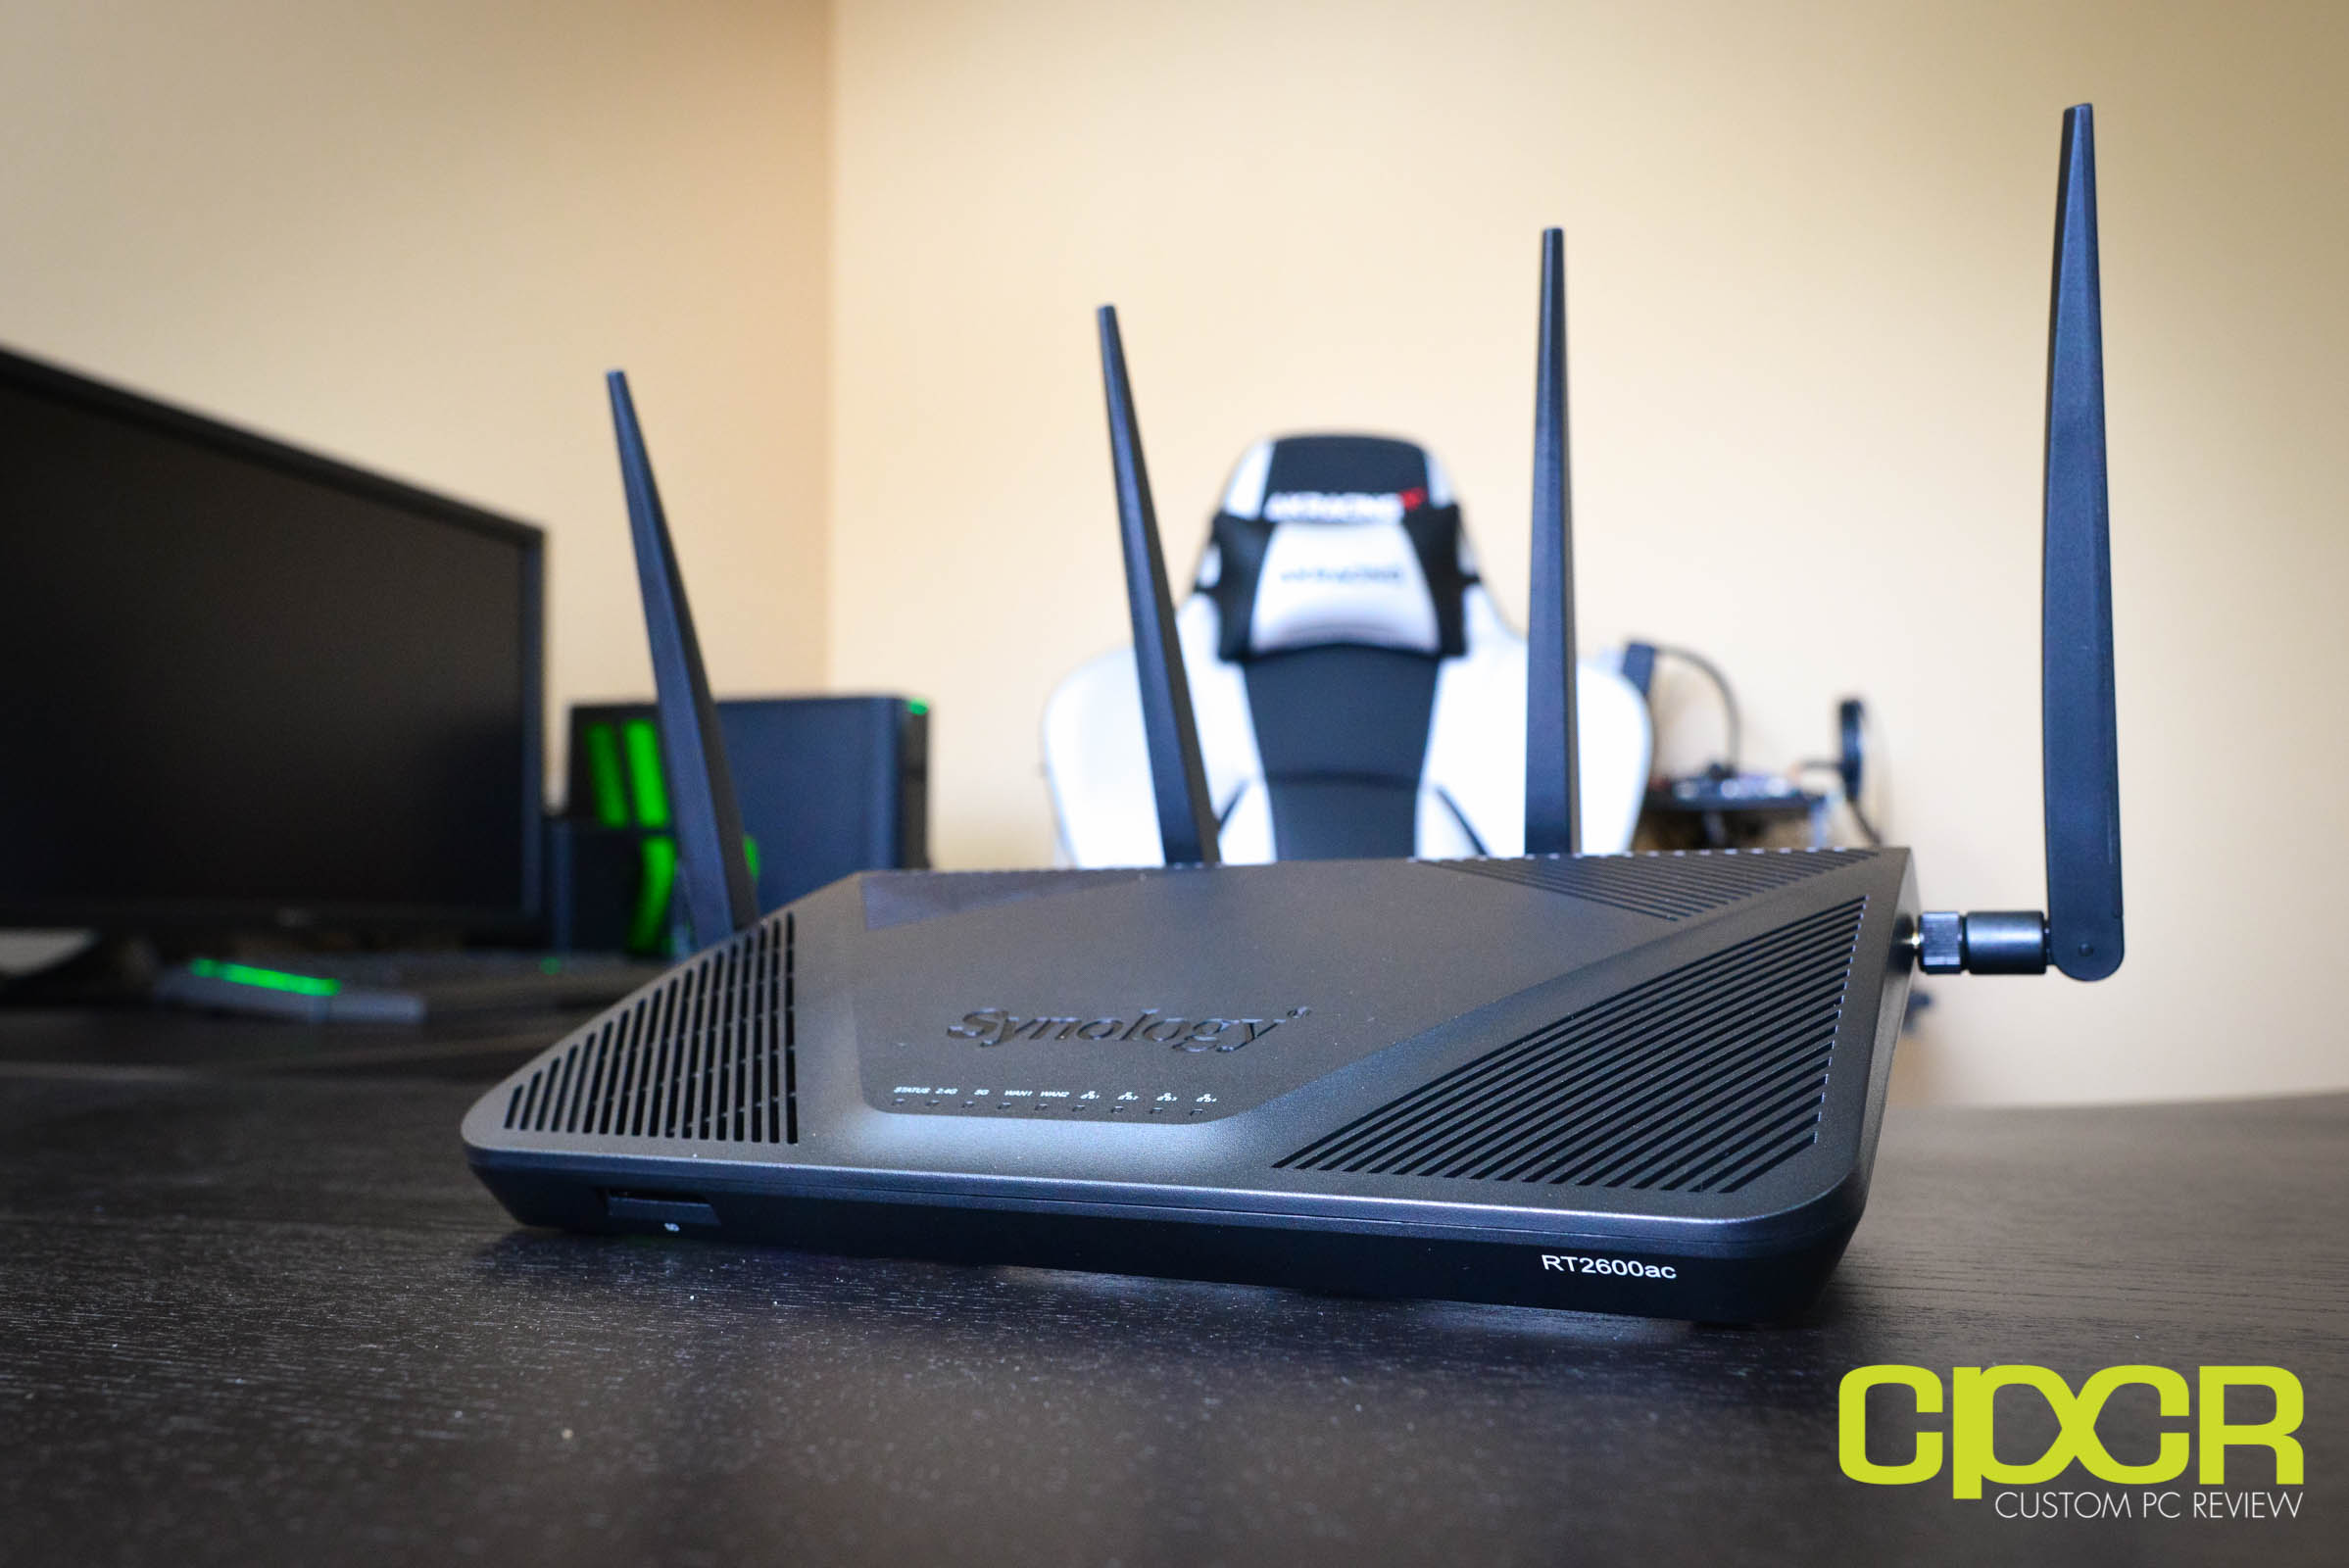 Synology RT2600ac Review | WiFi Router | Custom PC Review